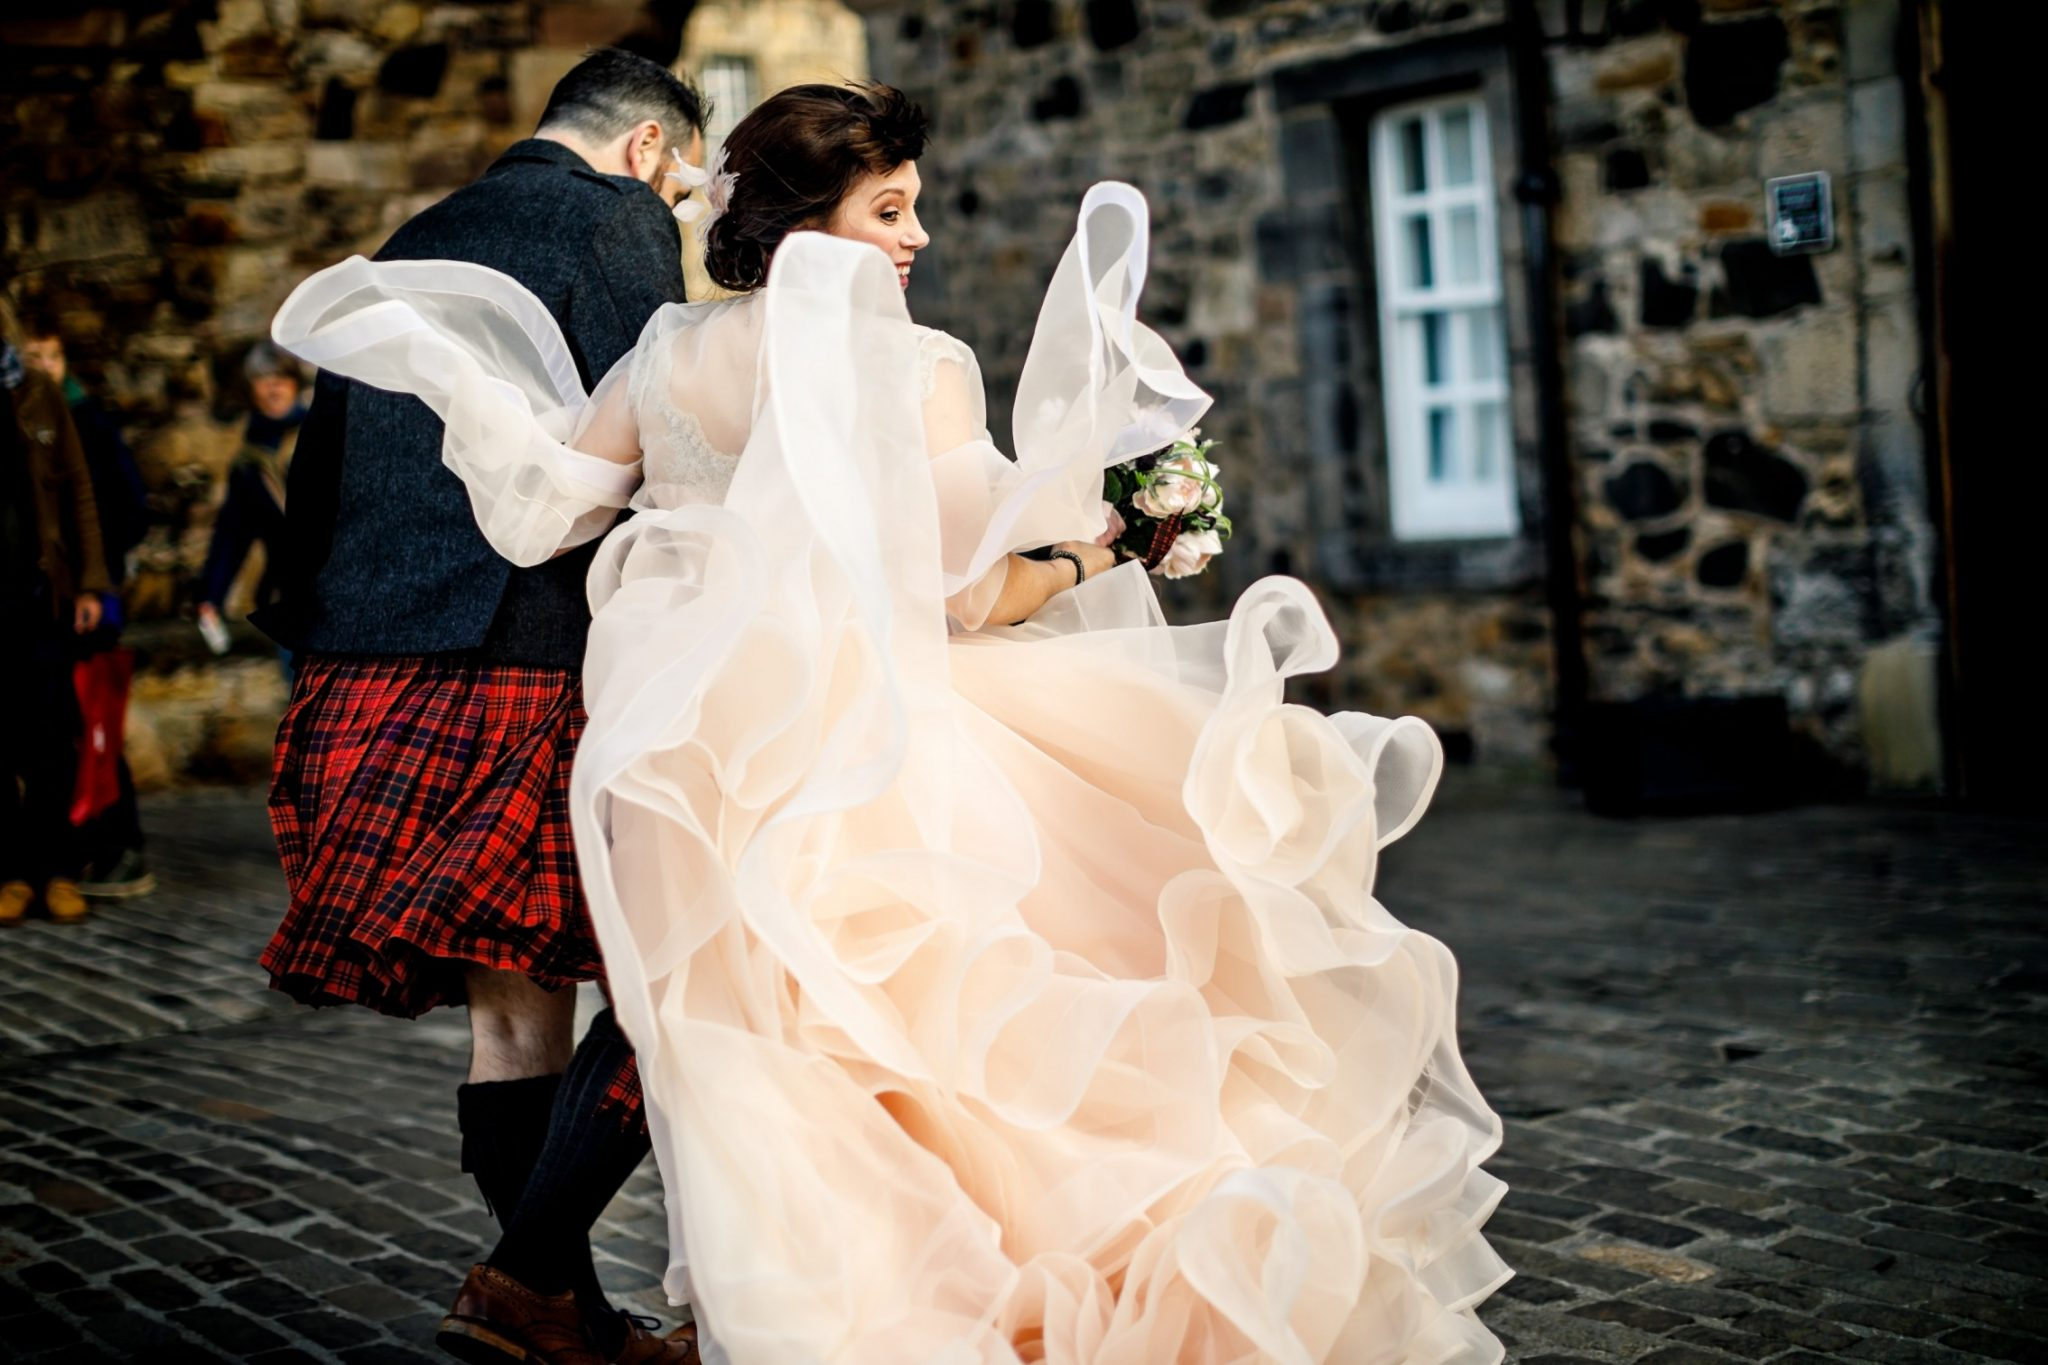 Unique Wedding Venues- Unconventional Wedding- Lina & Tom Photography- unique wedding dress